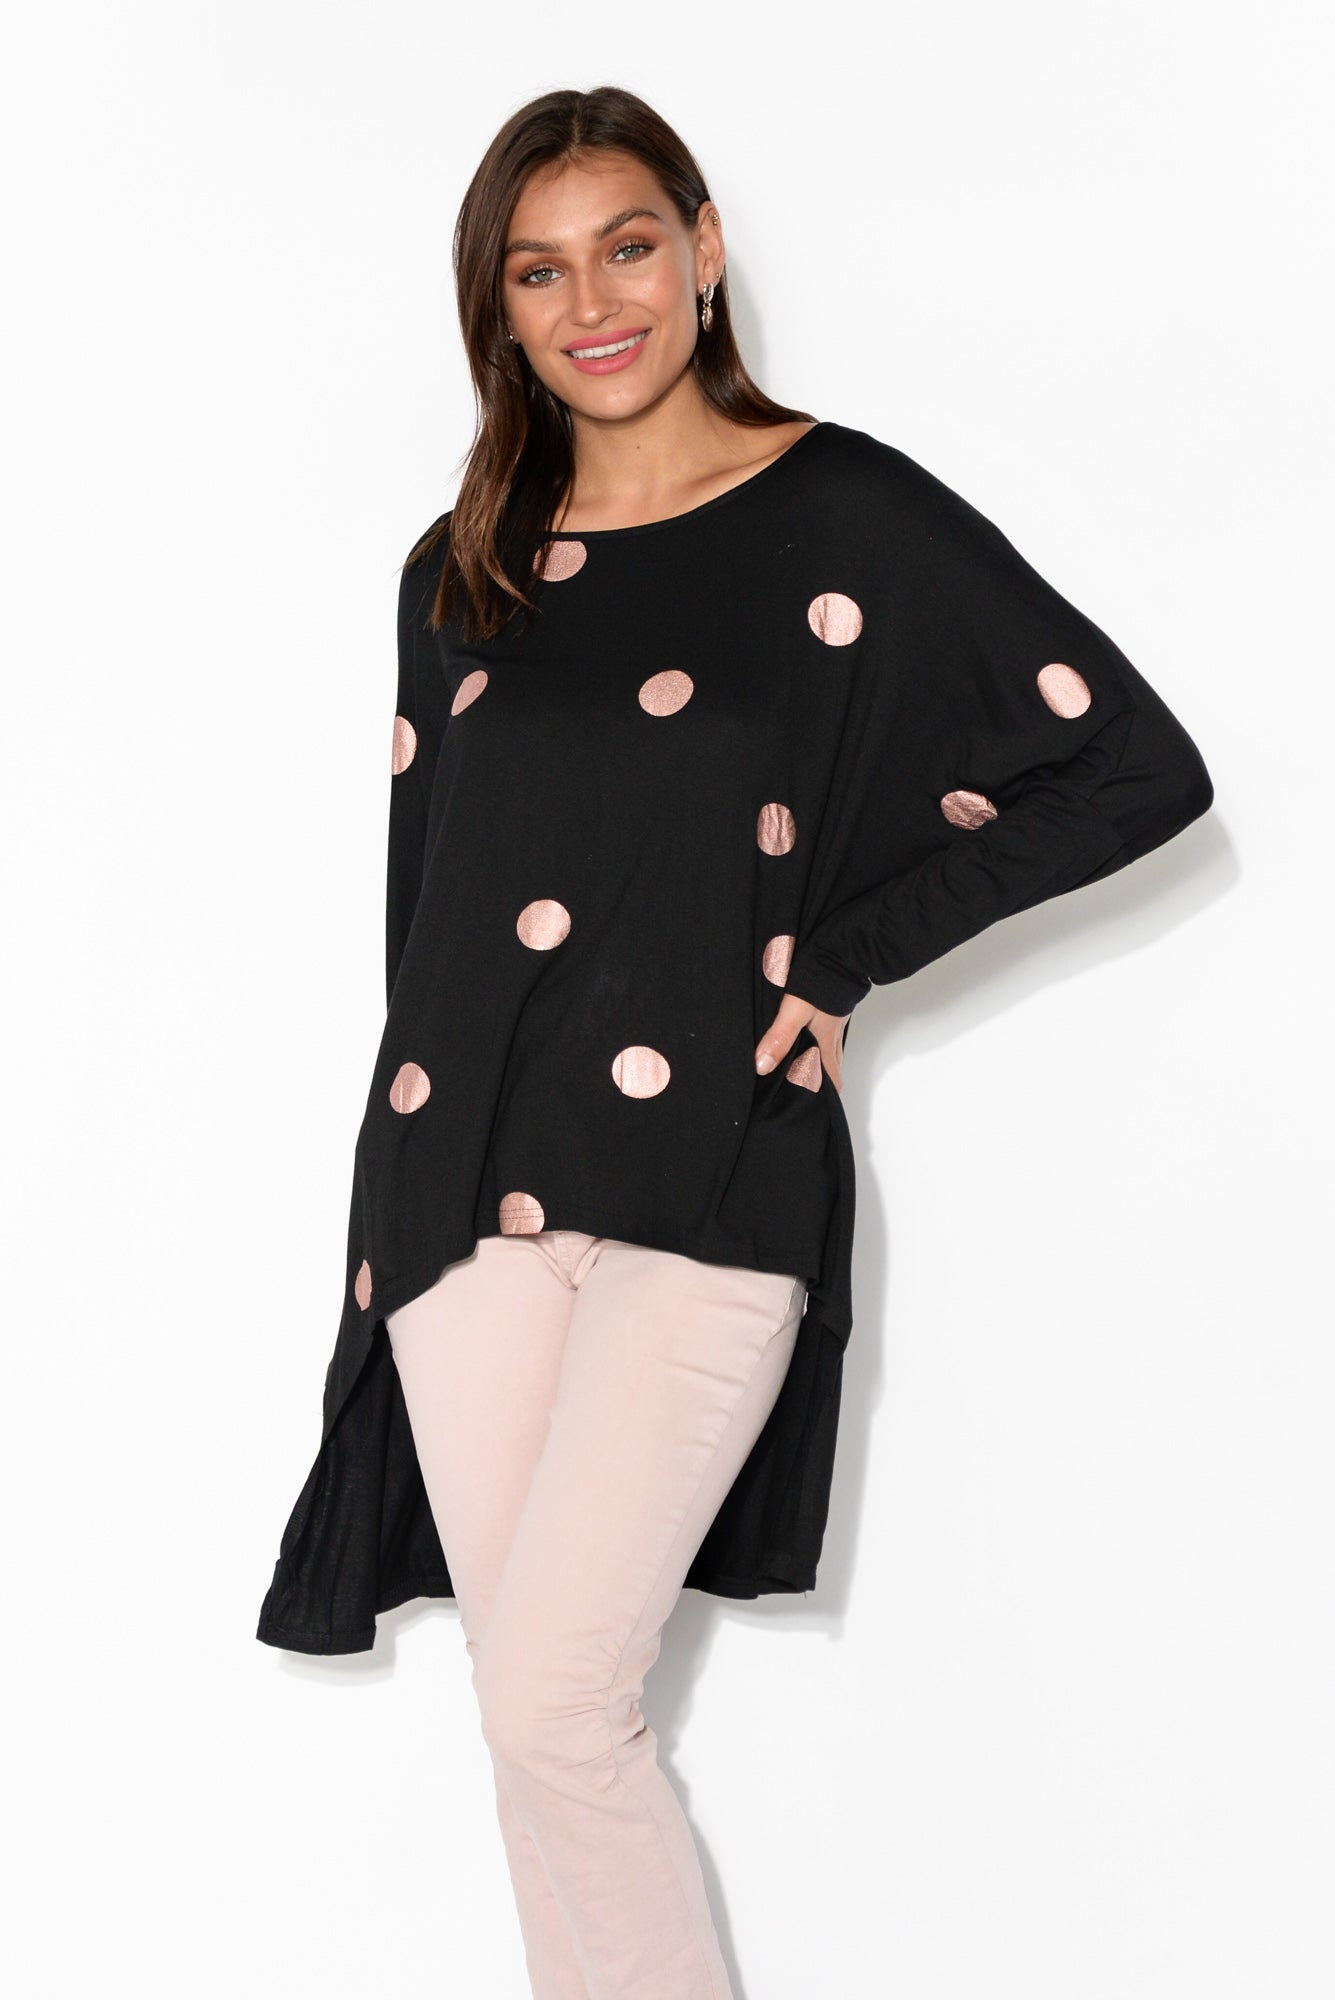 Karlie Black Spot Long Sleeved Top